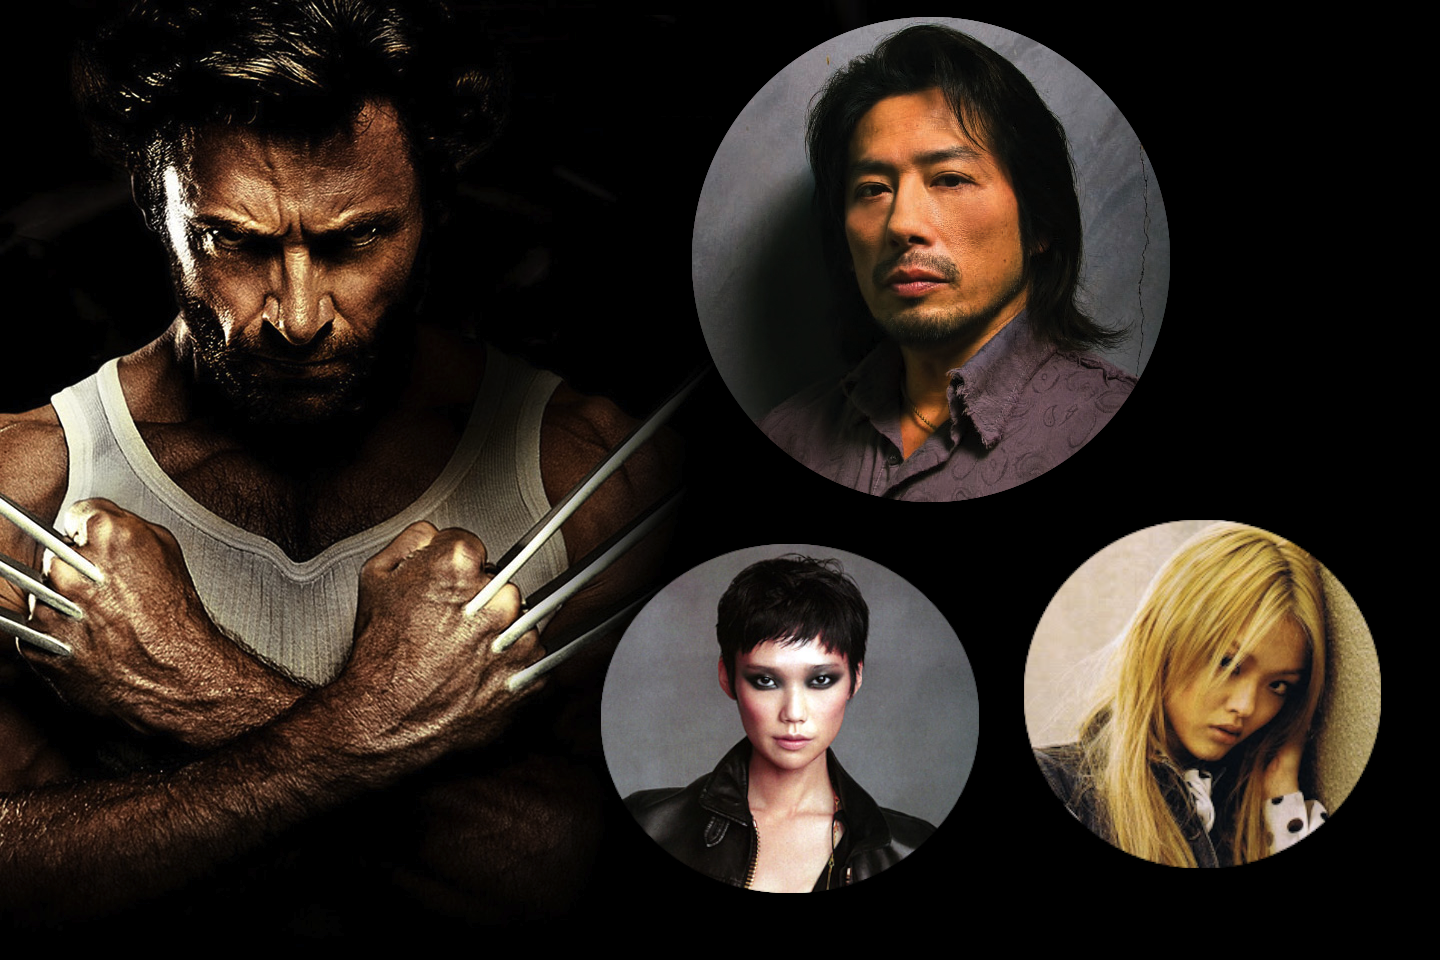 http://4.bp.blogspot.com/-eiza0B9Pa_Y/UAsh3CWCDeI/AAAAAAAAQfo/Y0OOG84oAzU/s1600/THE-WOLVERINE_JAPANESE-CAST.png